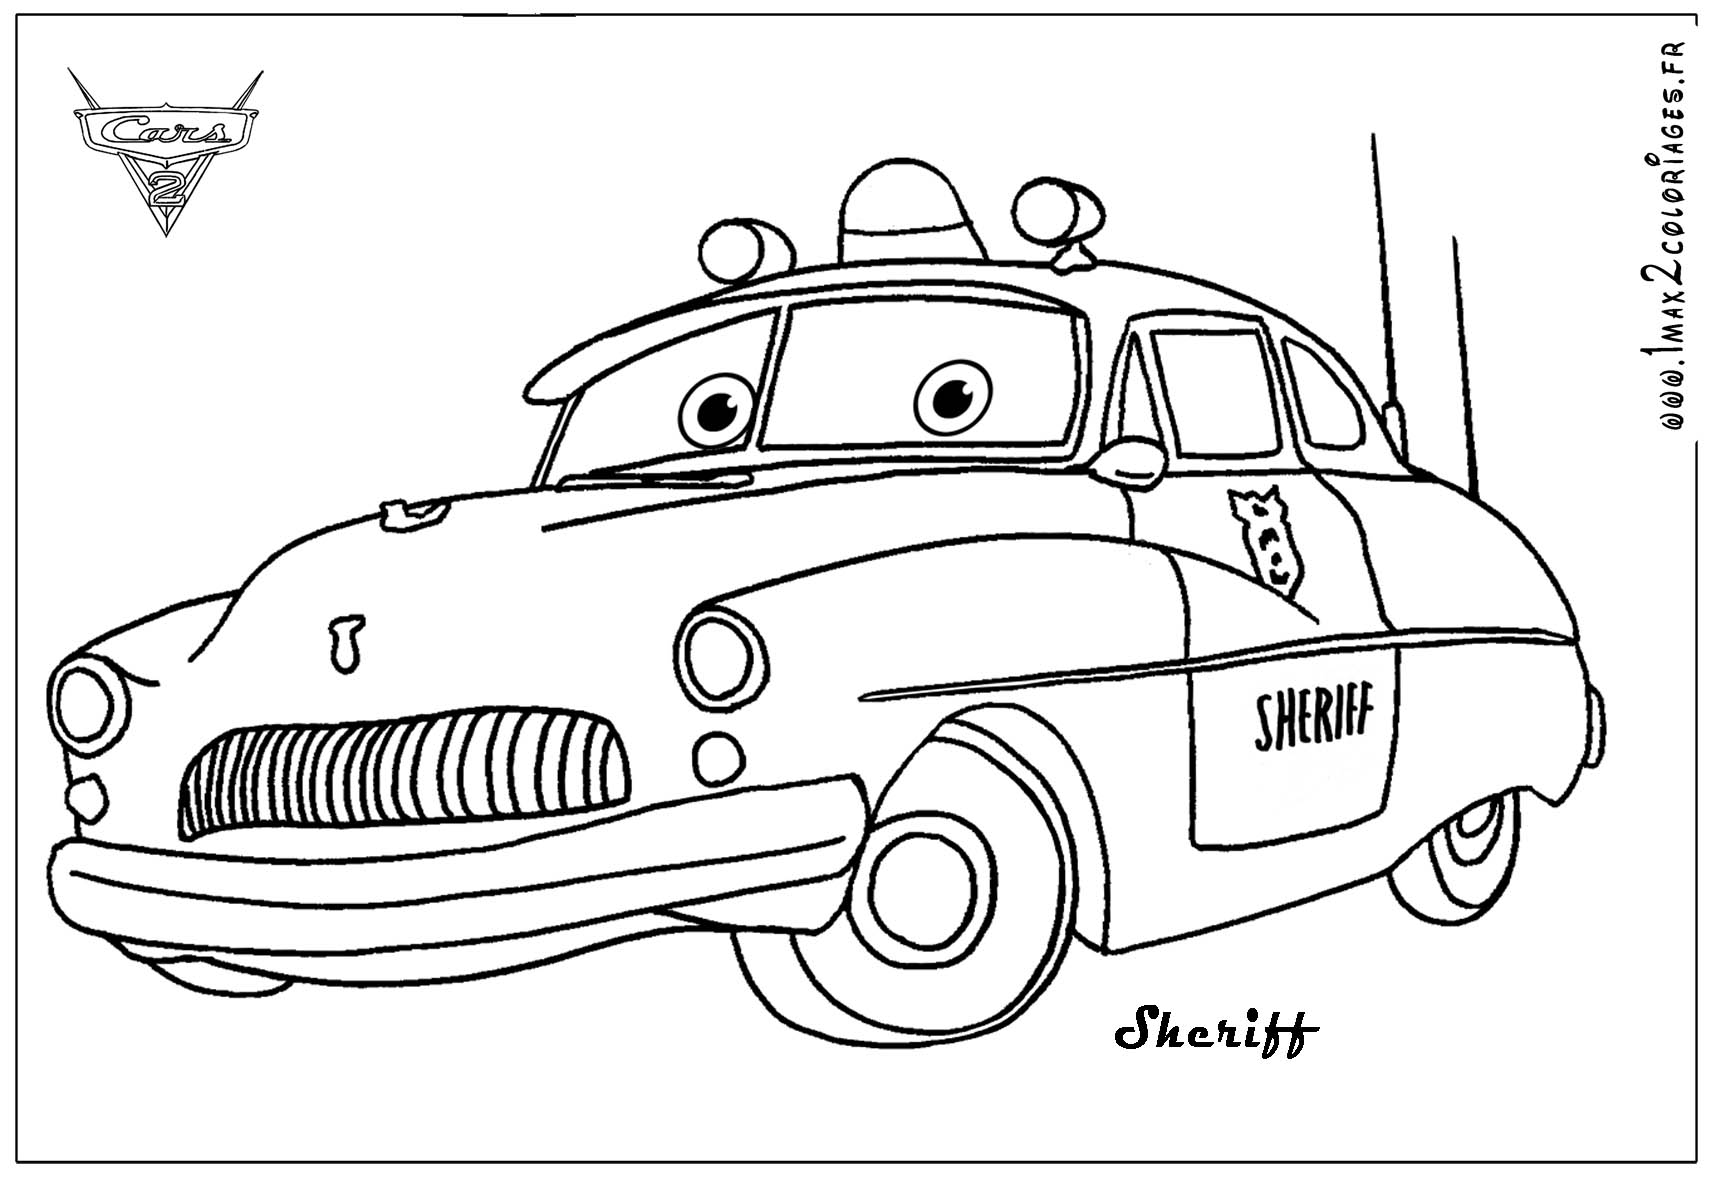 pixar movie cars coloring pages - photo#25